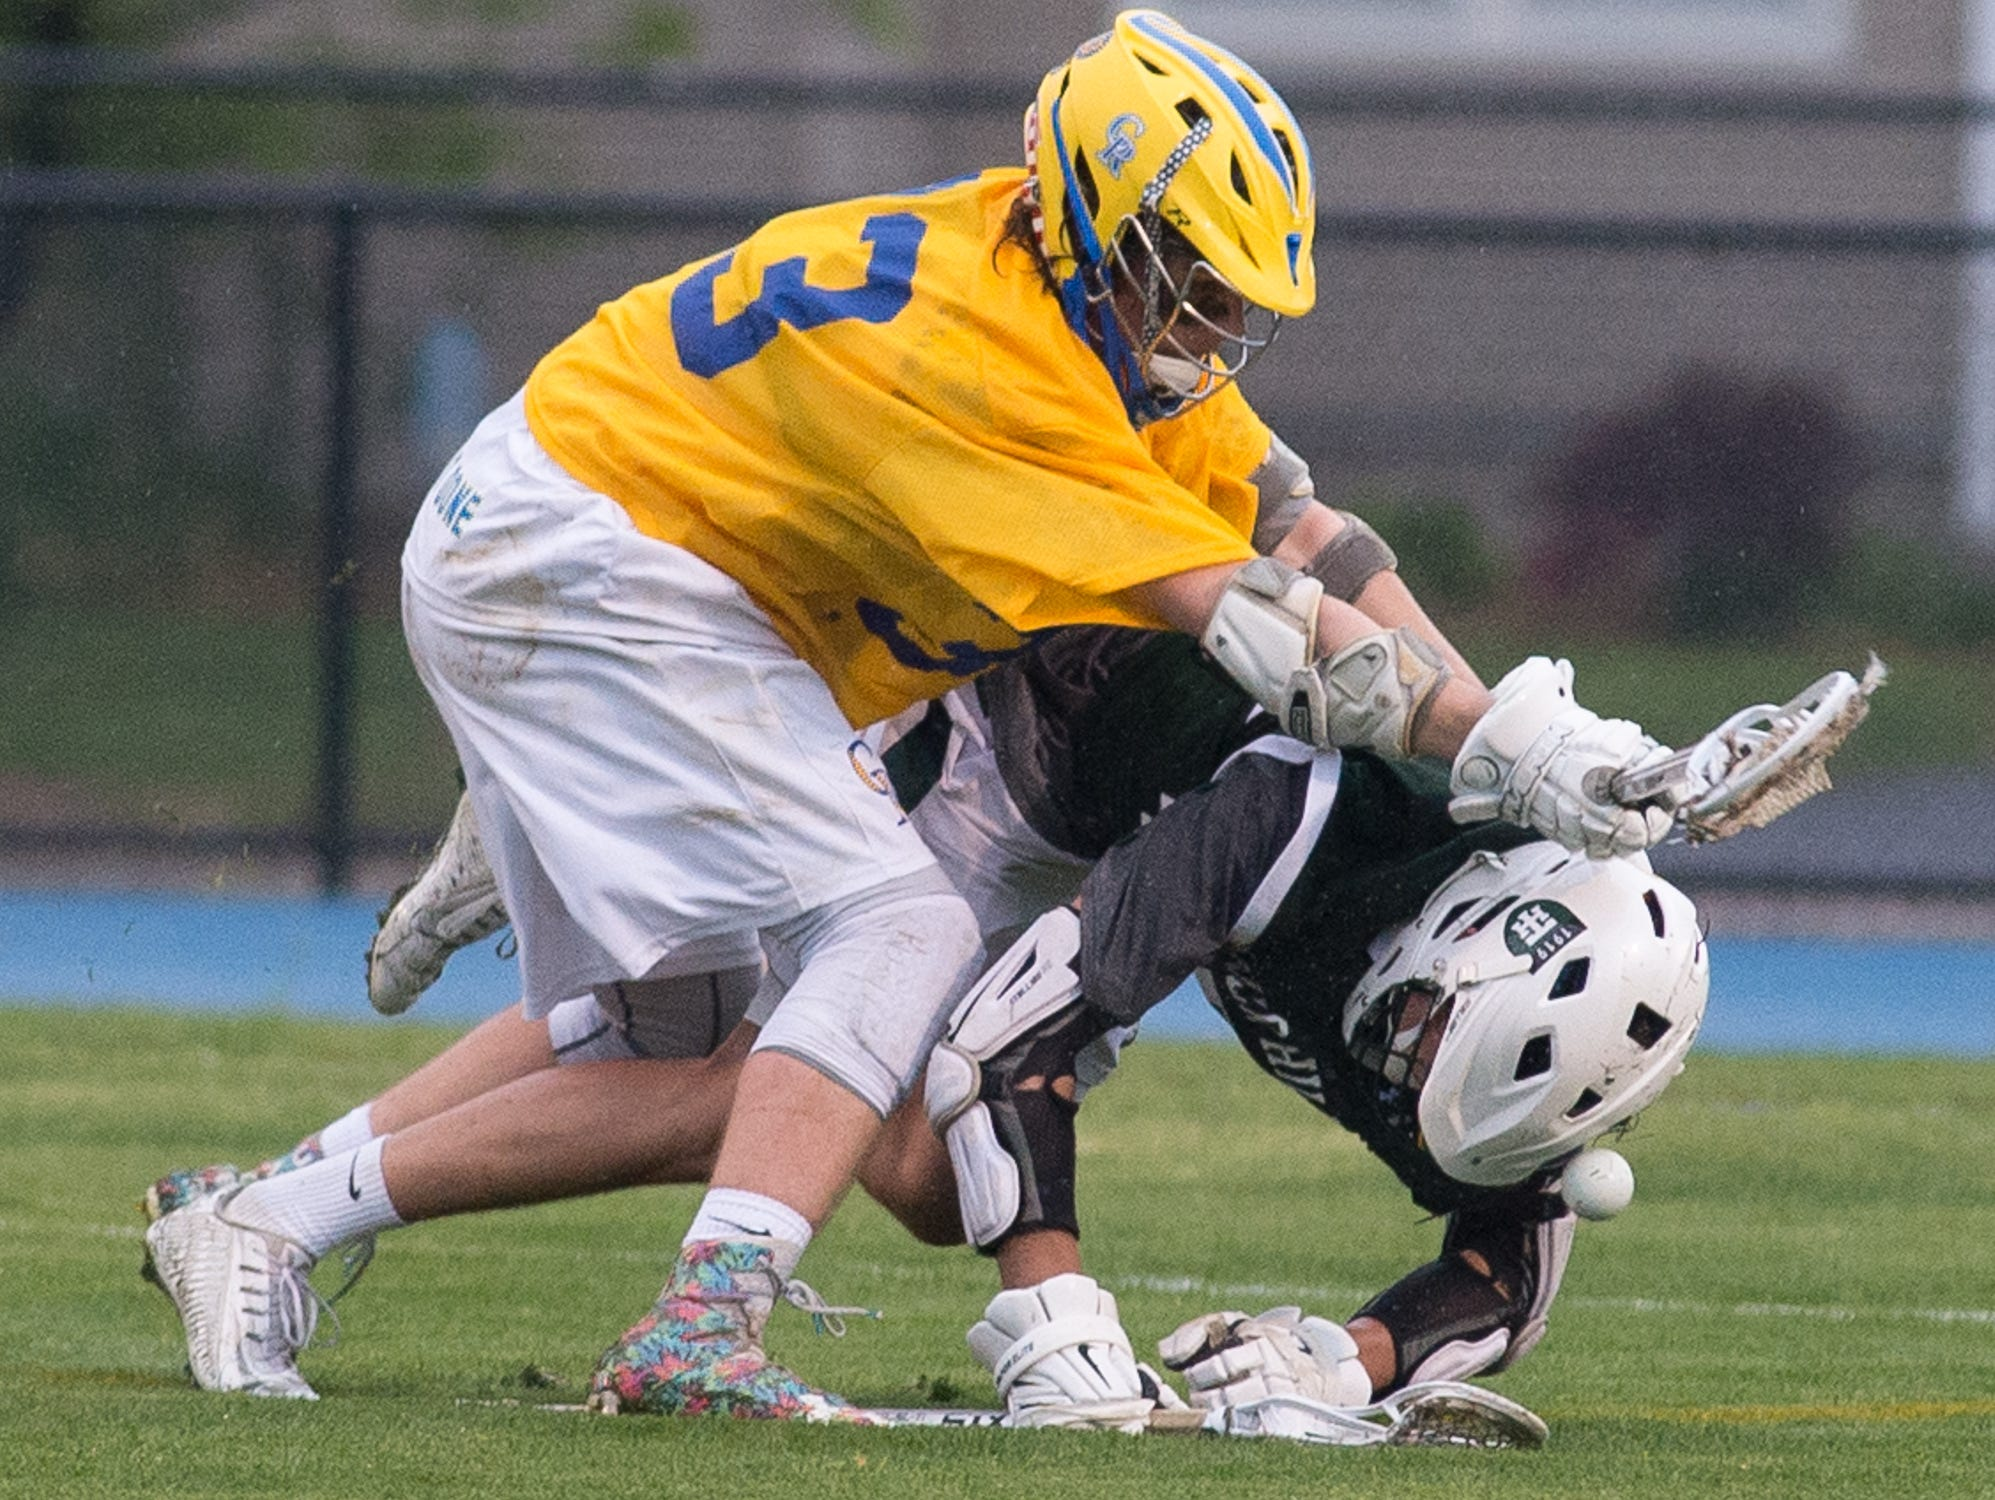 Caesar Rodney's Jacob Mollohan (33), left, with a hit to a Tower Hill player that ended in a penalty against Caesar Rodney.